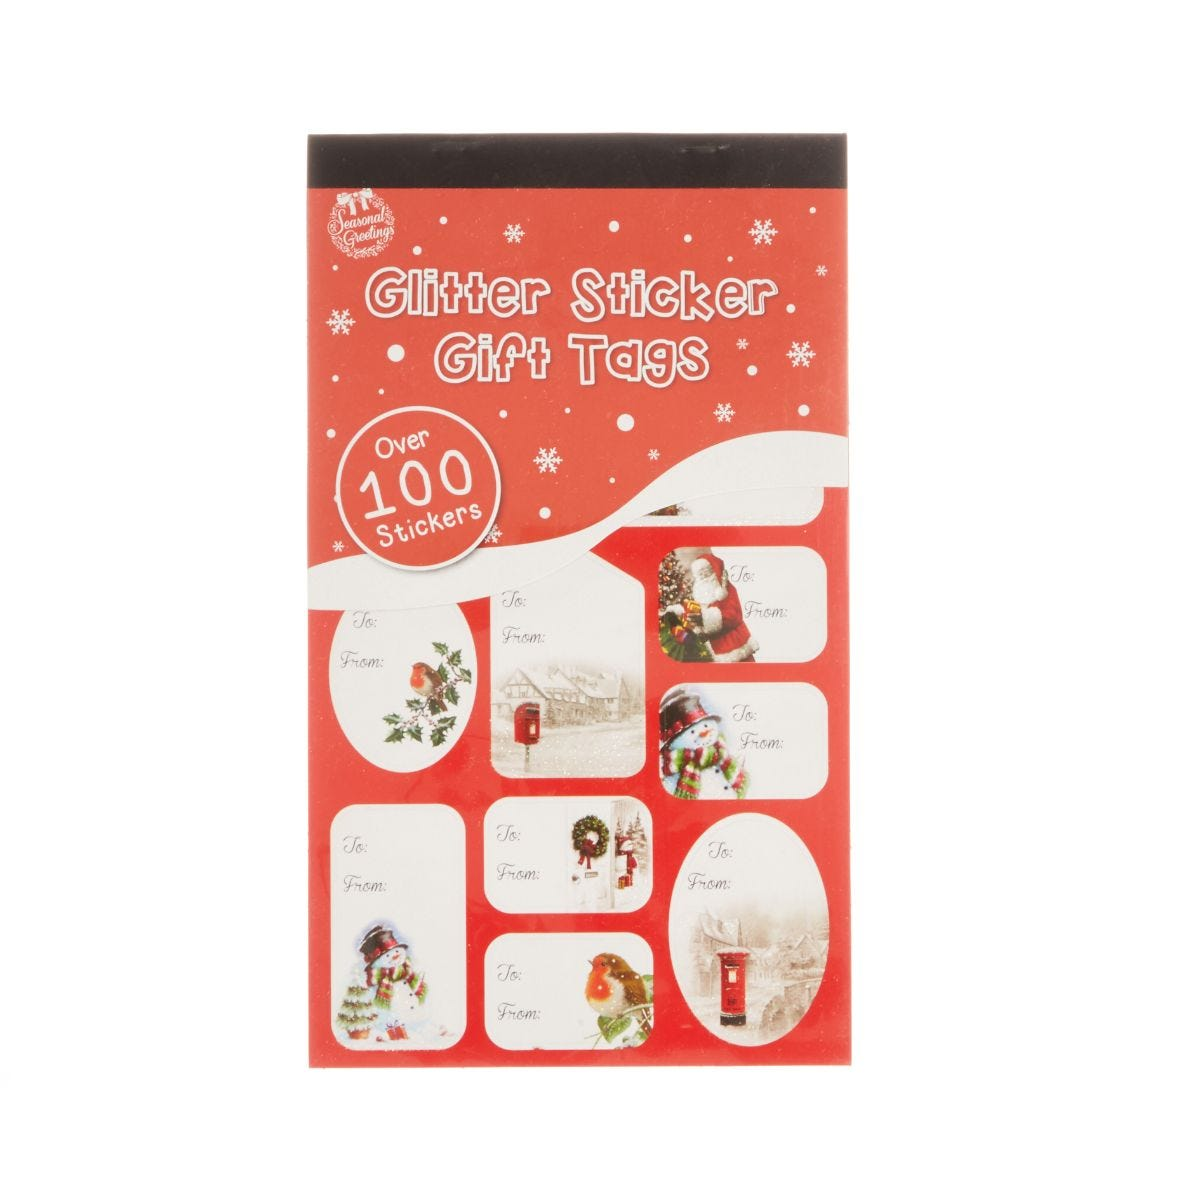 Image of Glitter Sticker Christmas Gift Tags